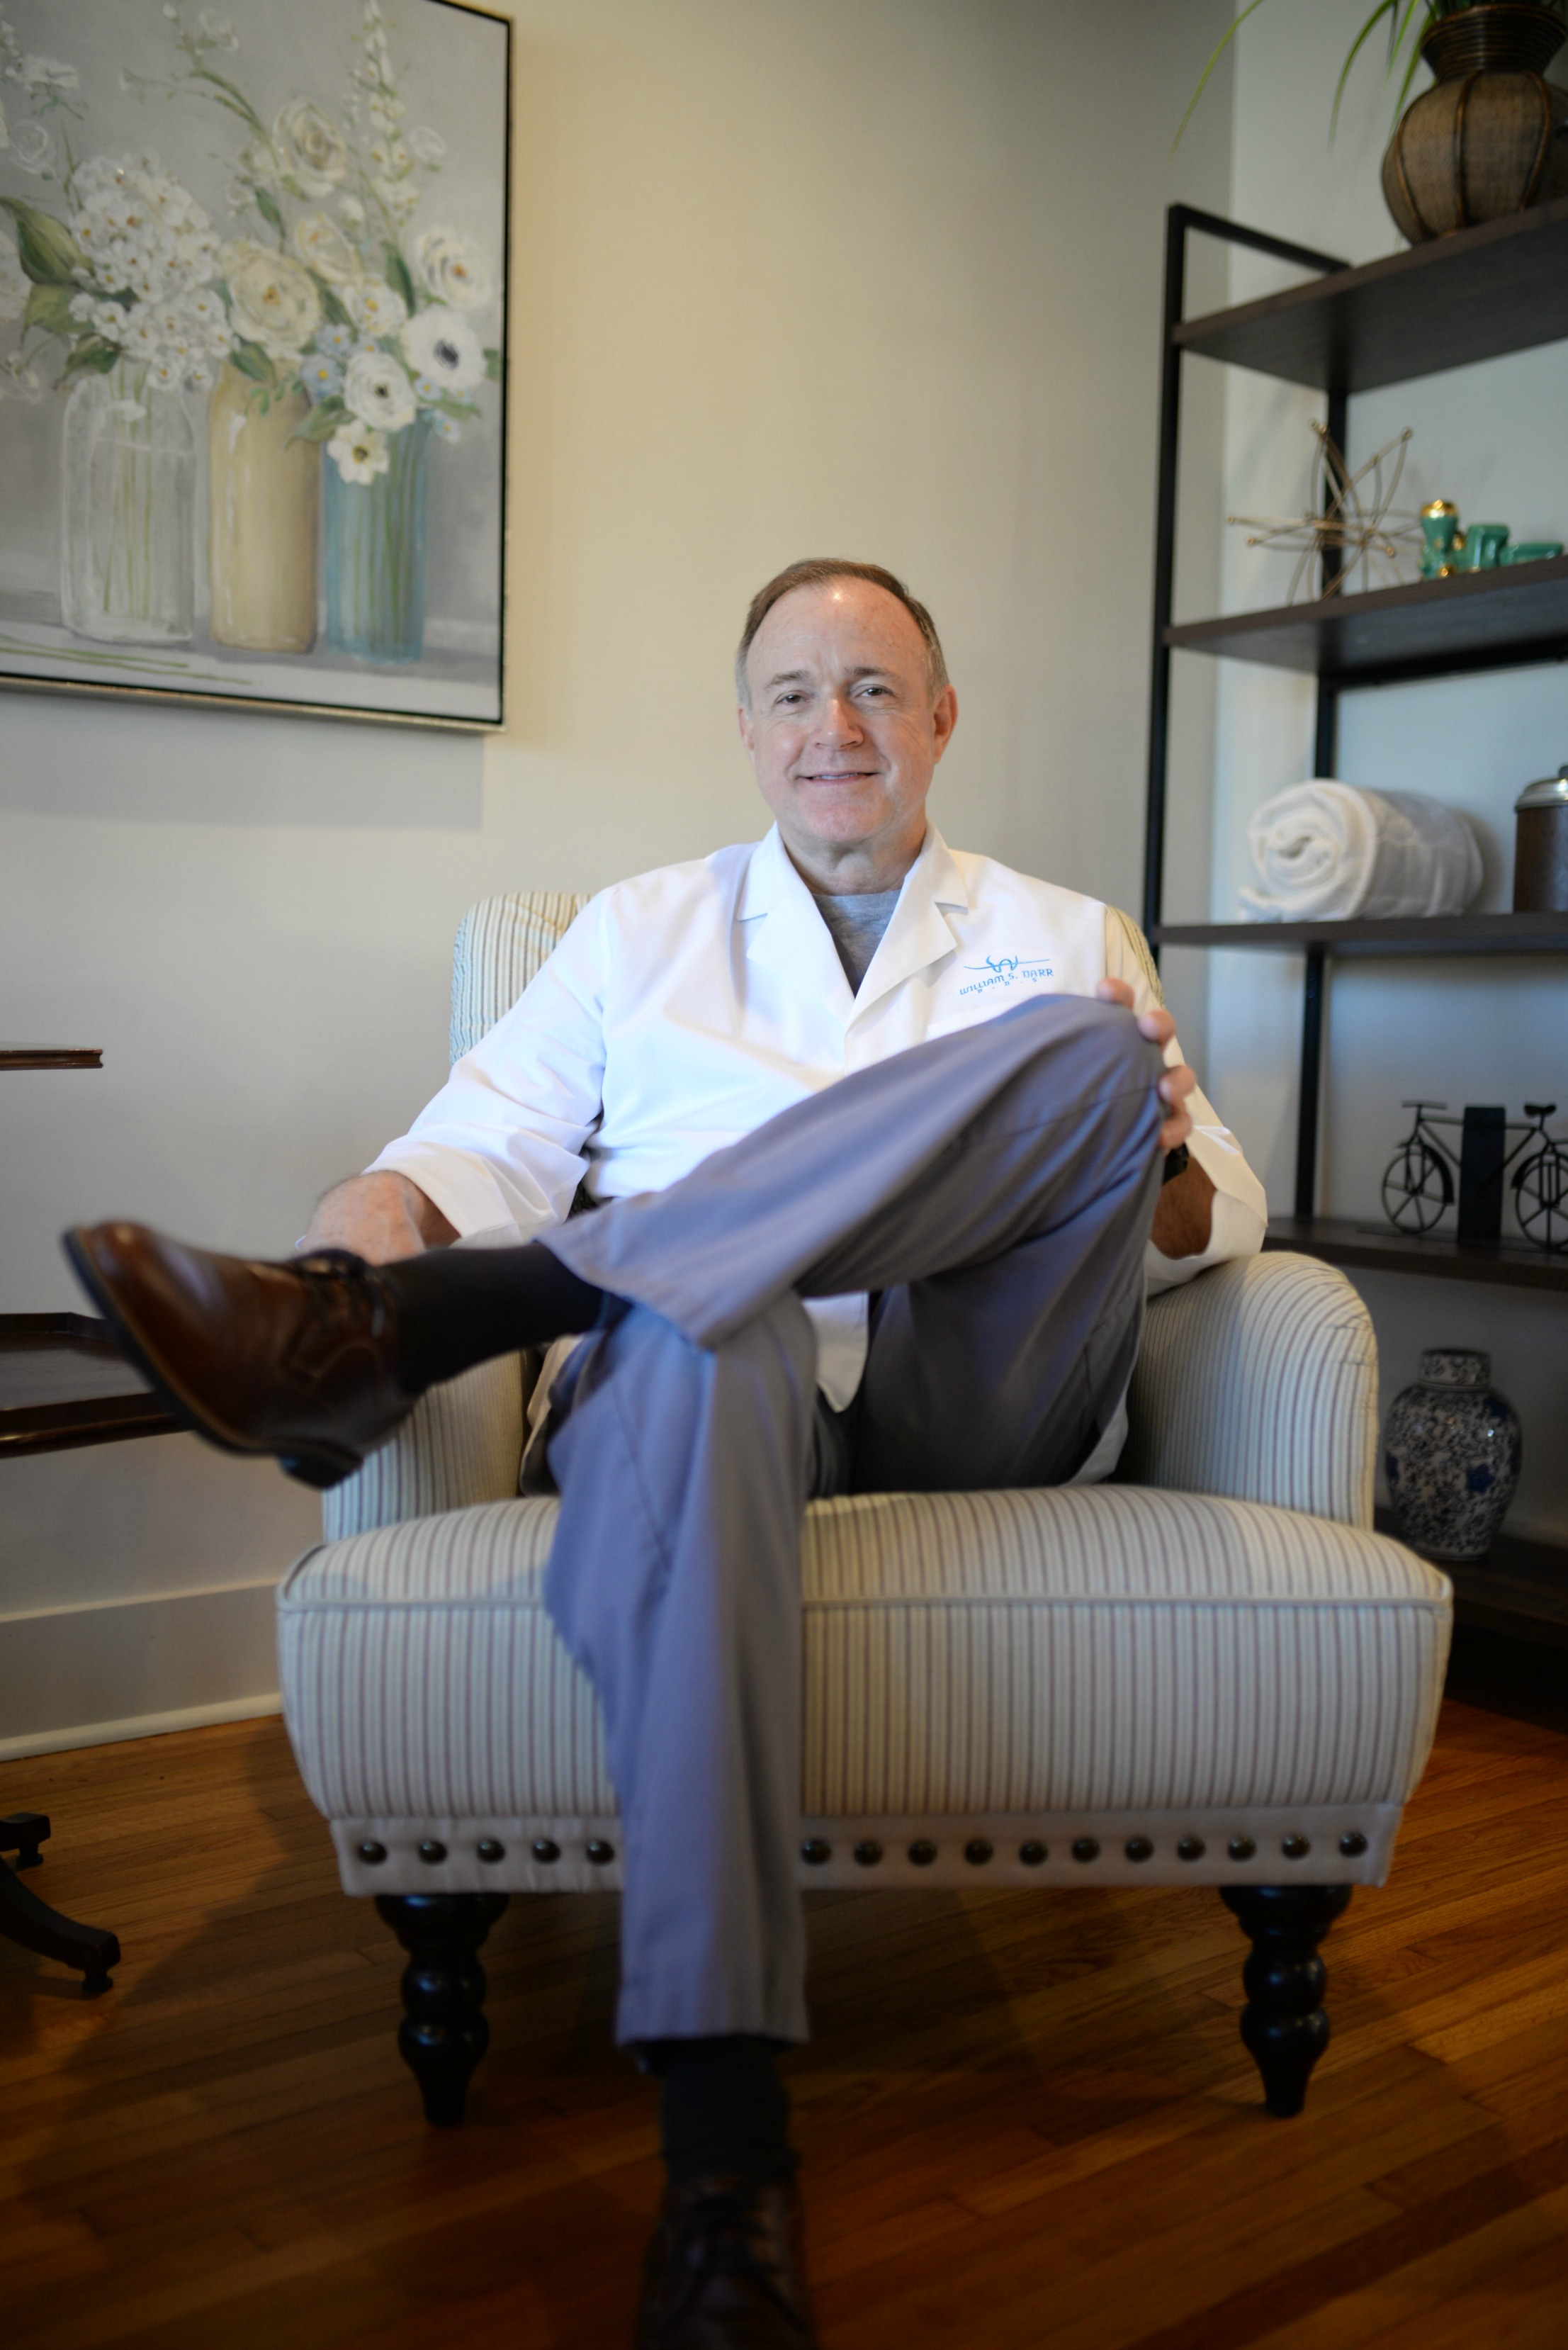 William S. Darr, DDS reviews | Dental Hygienists at 107 S Morgan Ave - Broussard LA